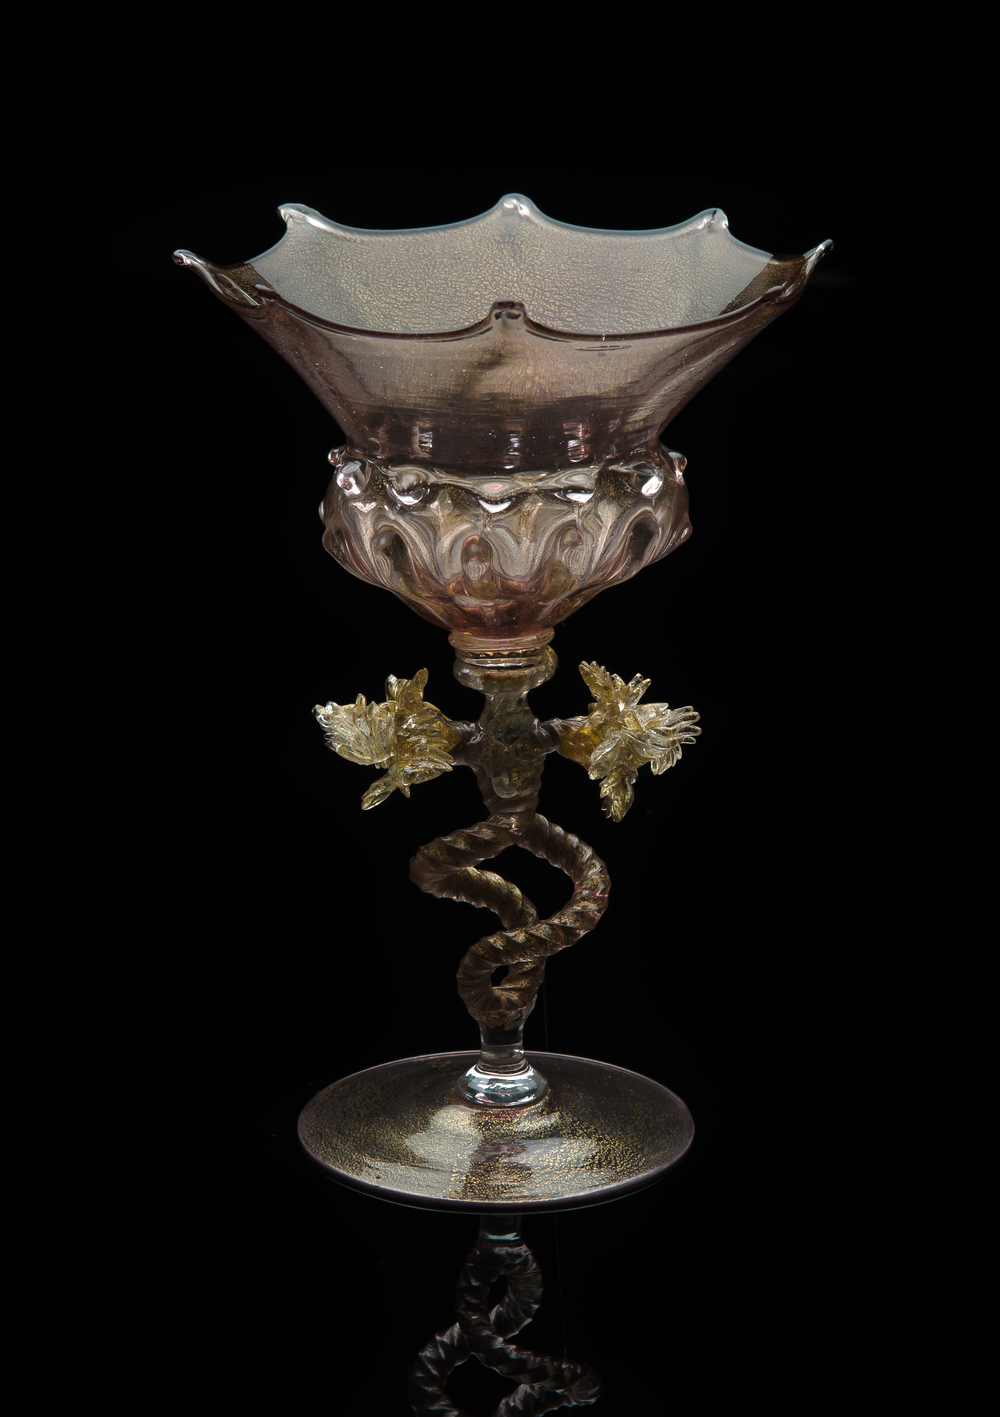 Salviati and Company,  Goblet with Double Helix Stem  (circa 1840 - 1860, glass, 7 x 5 inches), VV.21